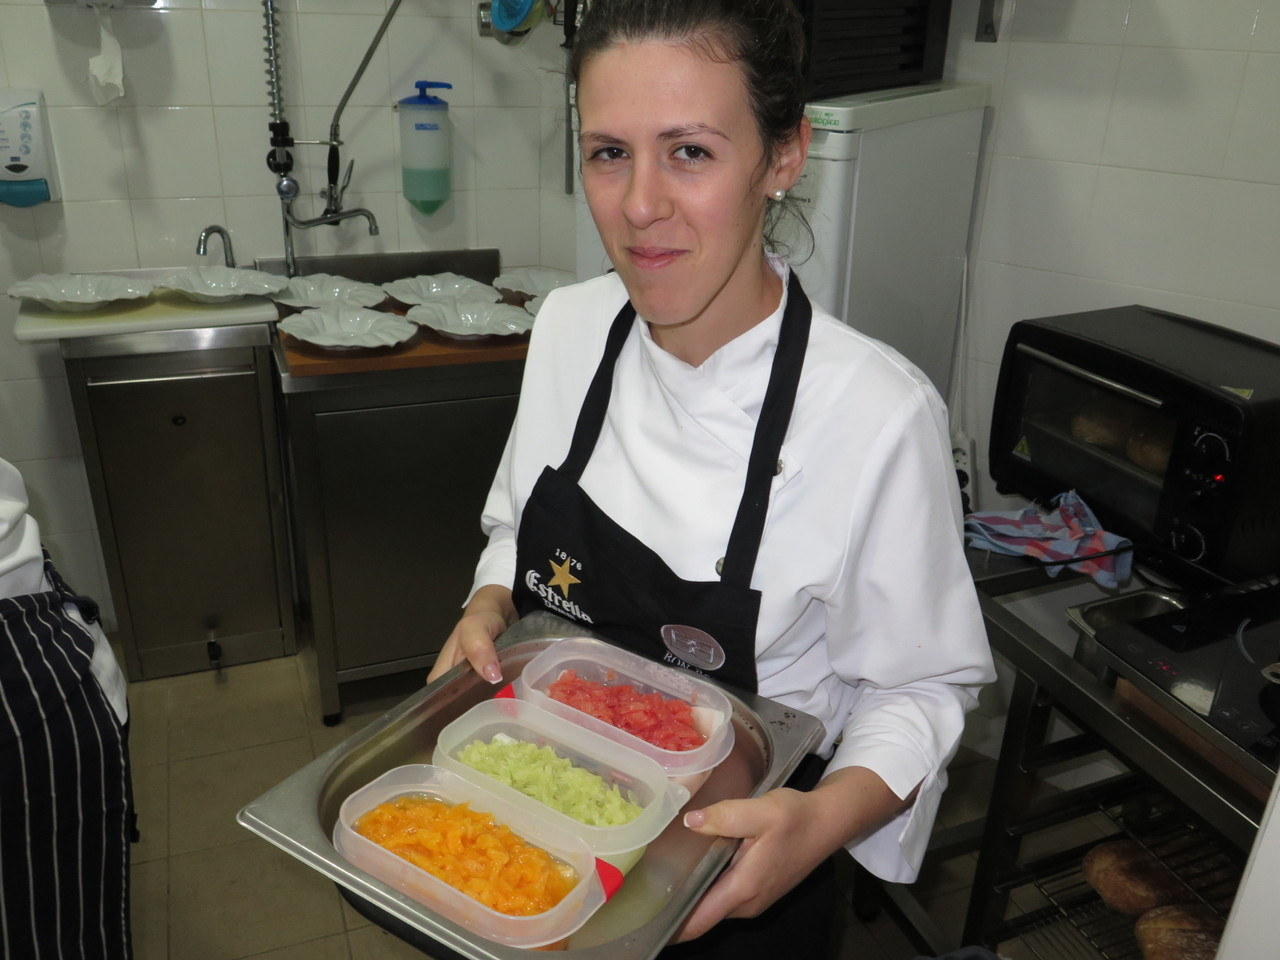 Chef pasteleira Nadia Carrasco